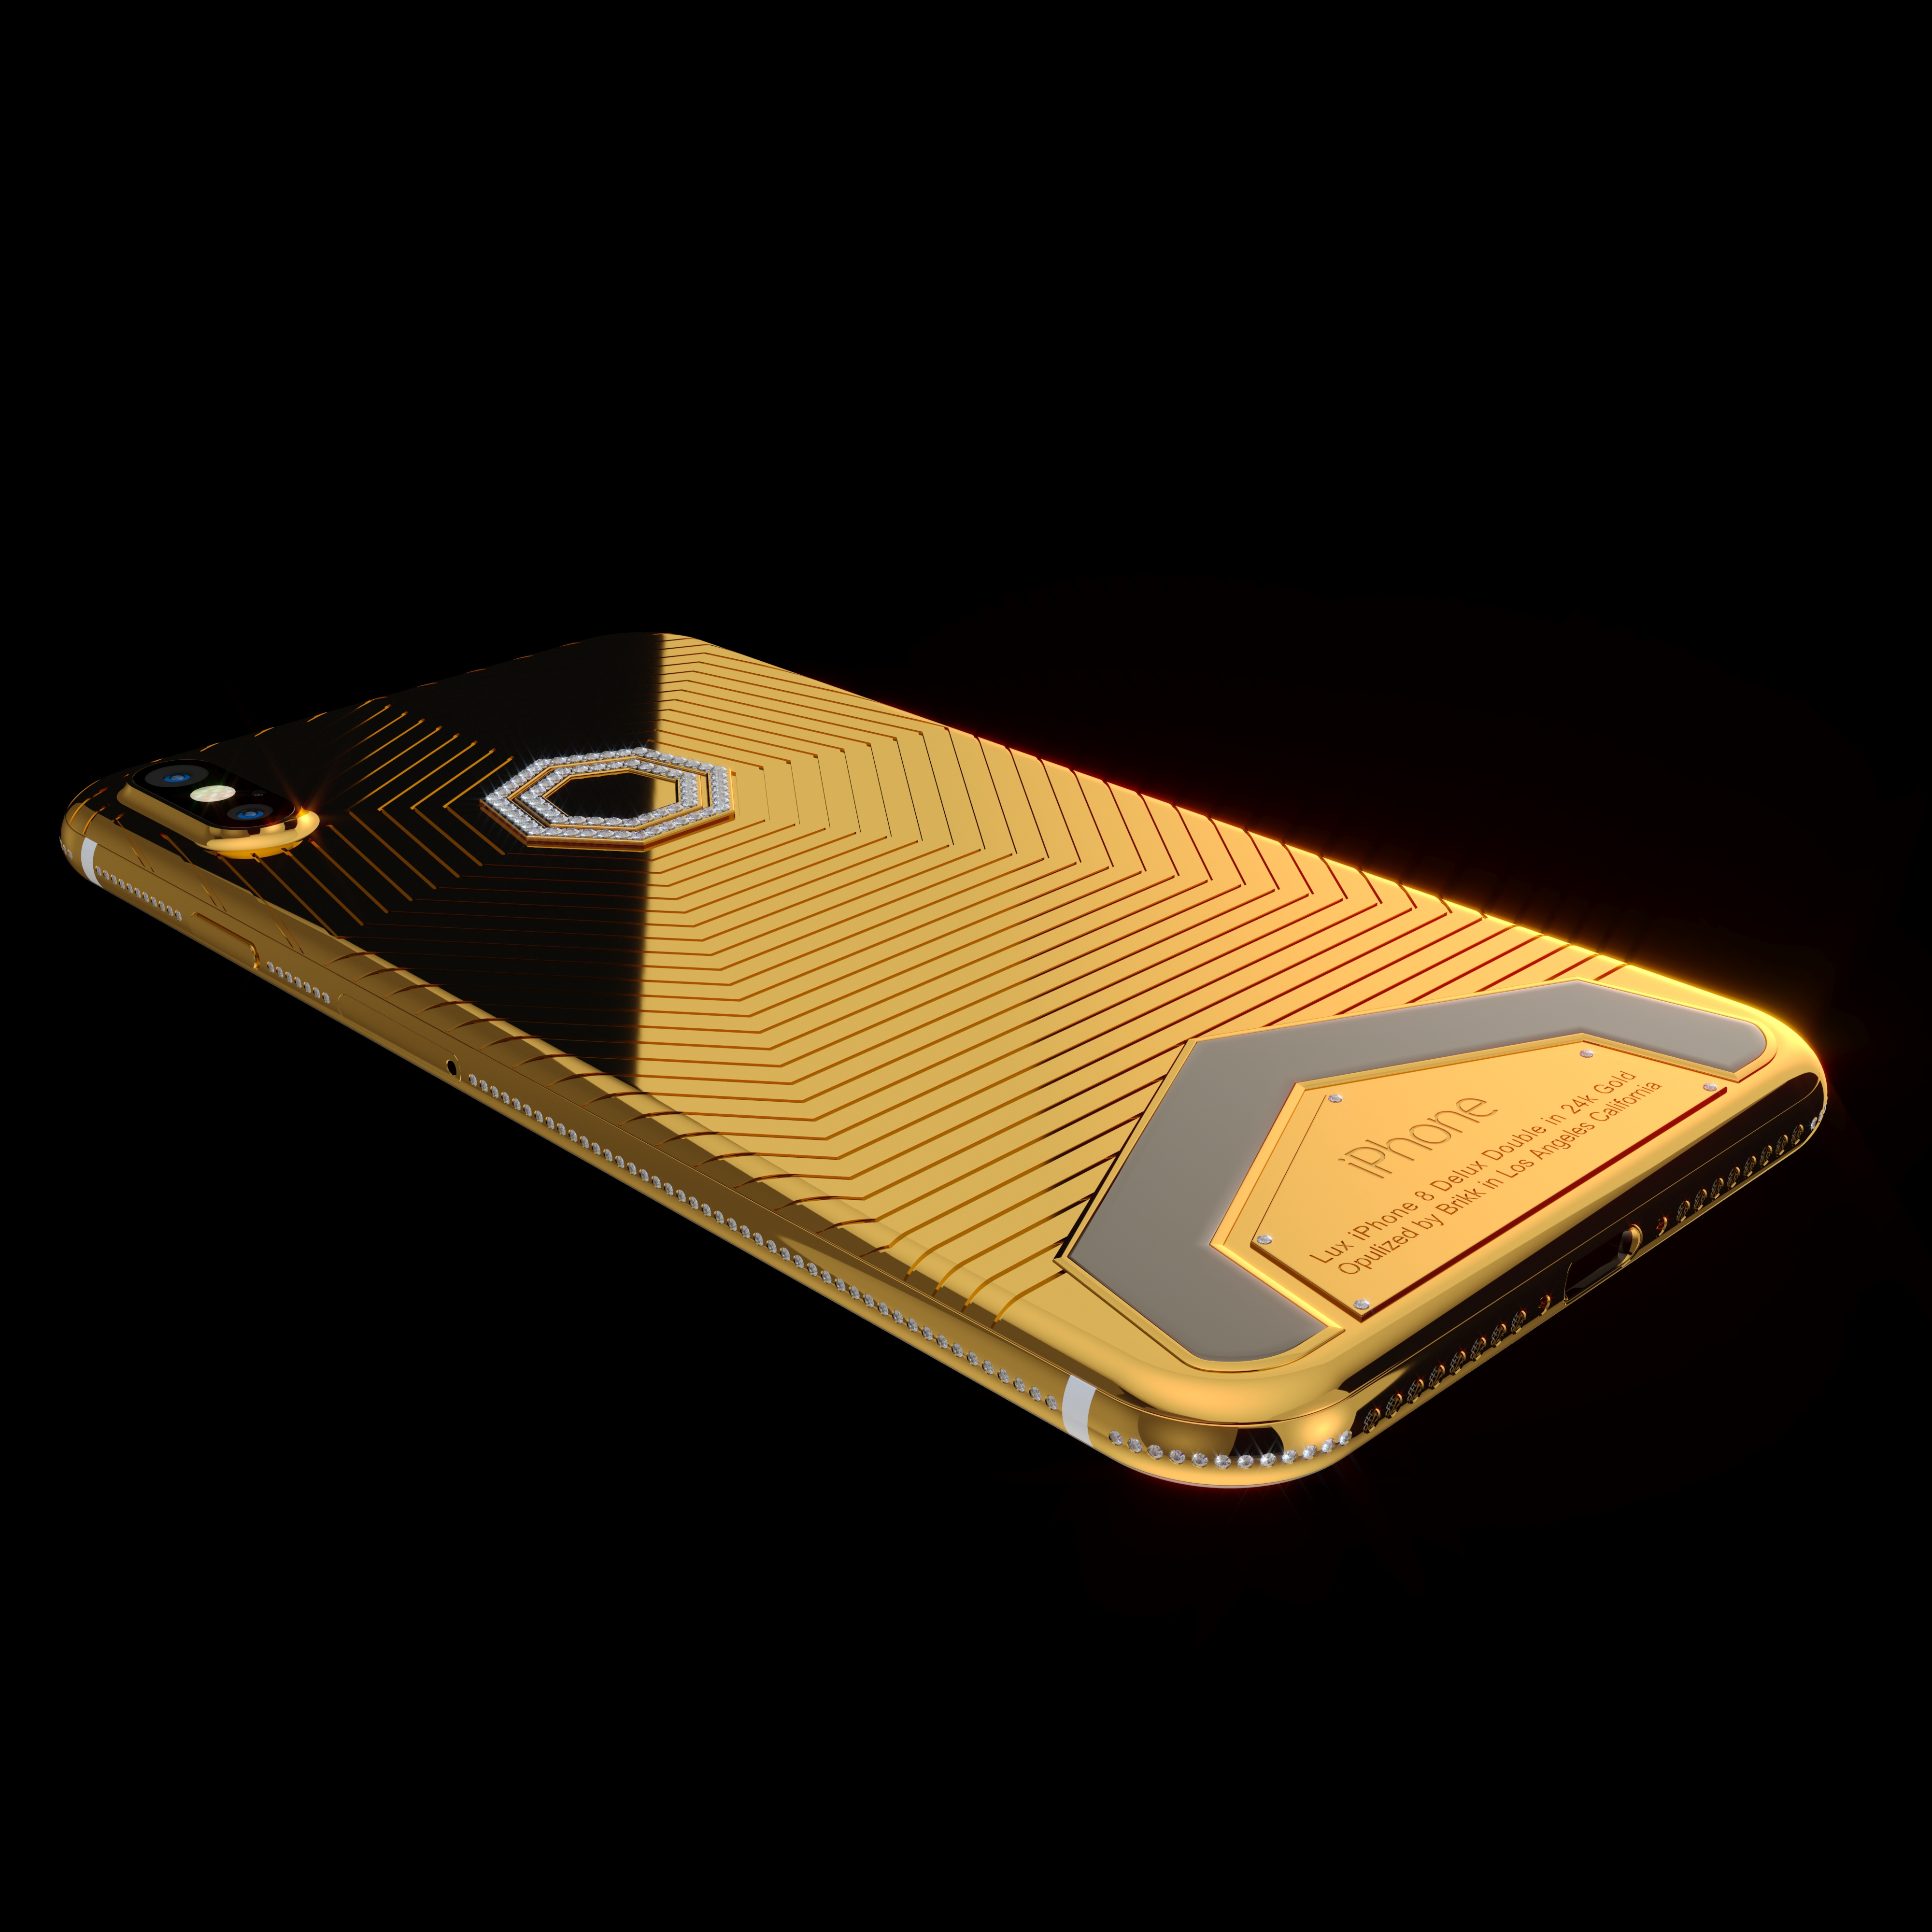 Brikk Launches Premium Version Of Iphone X In Gold And